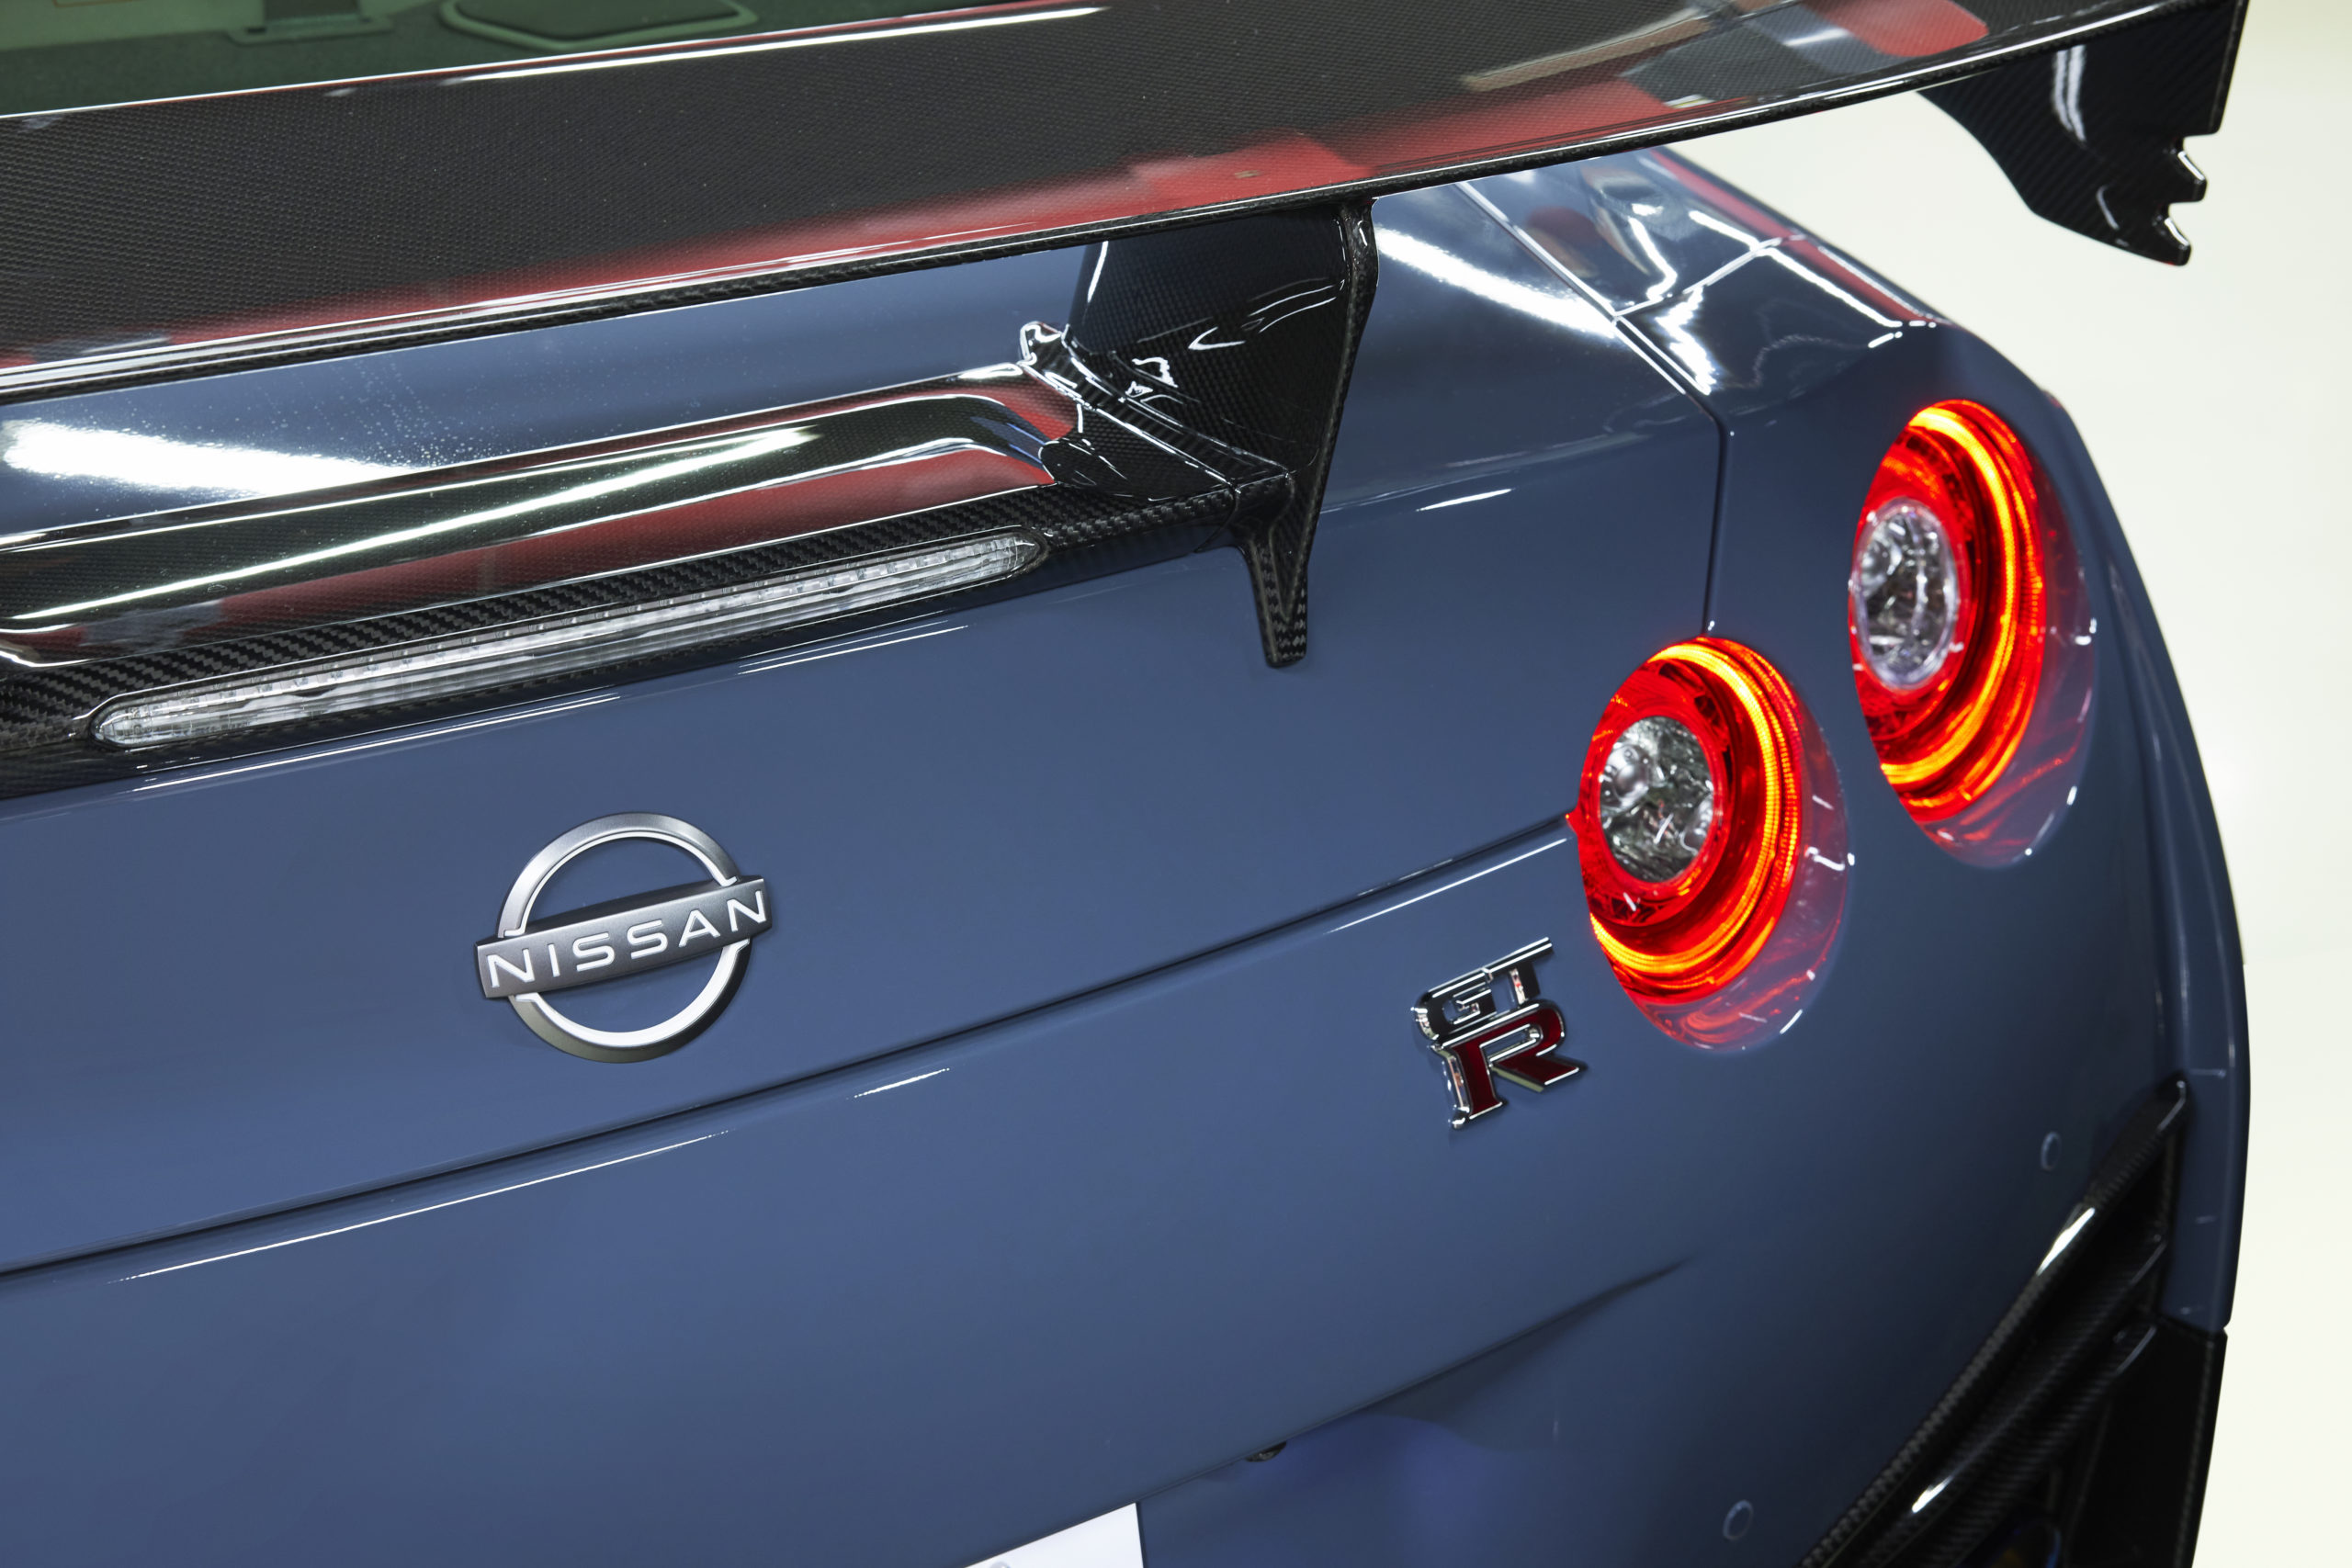 2022 Nissan GT-R NISMO Special Edition rear wing